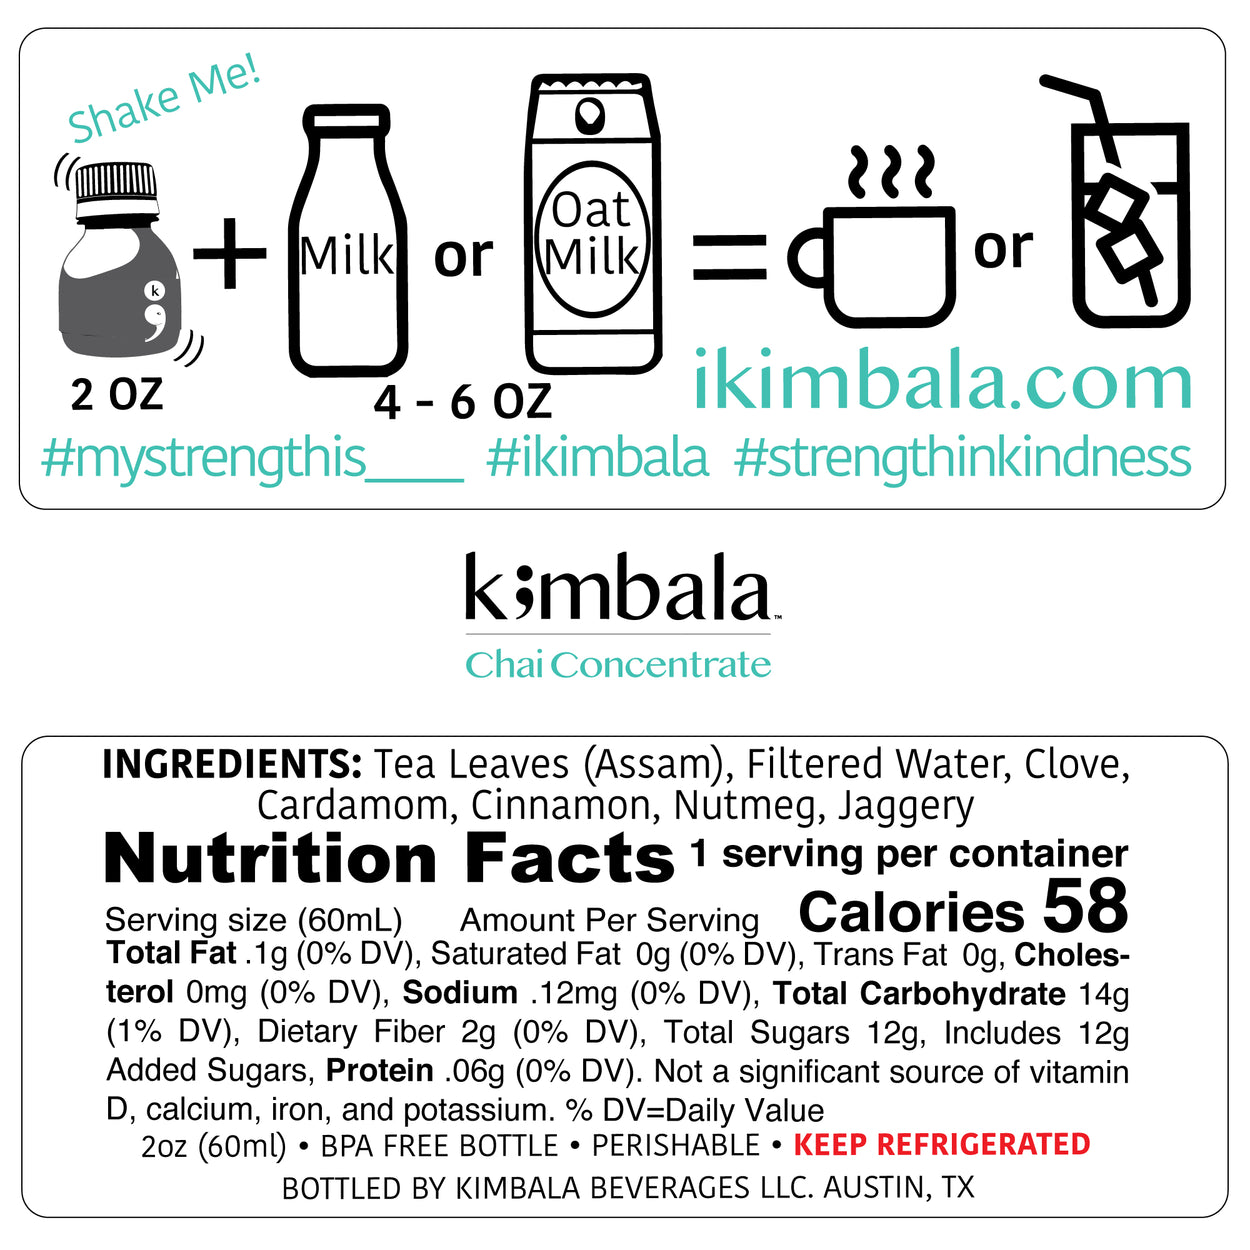 Kimbala Chai Concentrate nutrition facts for 2oz bottle and explanation in graphics on how to use the concentrate. Mix one 2oz bottle with 4-6oz of milk or oat milk and enjoy it hot or cold.